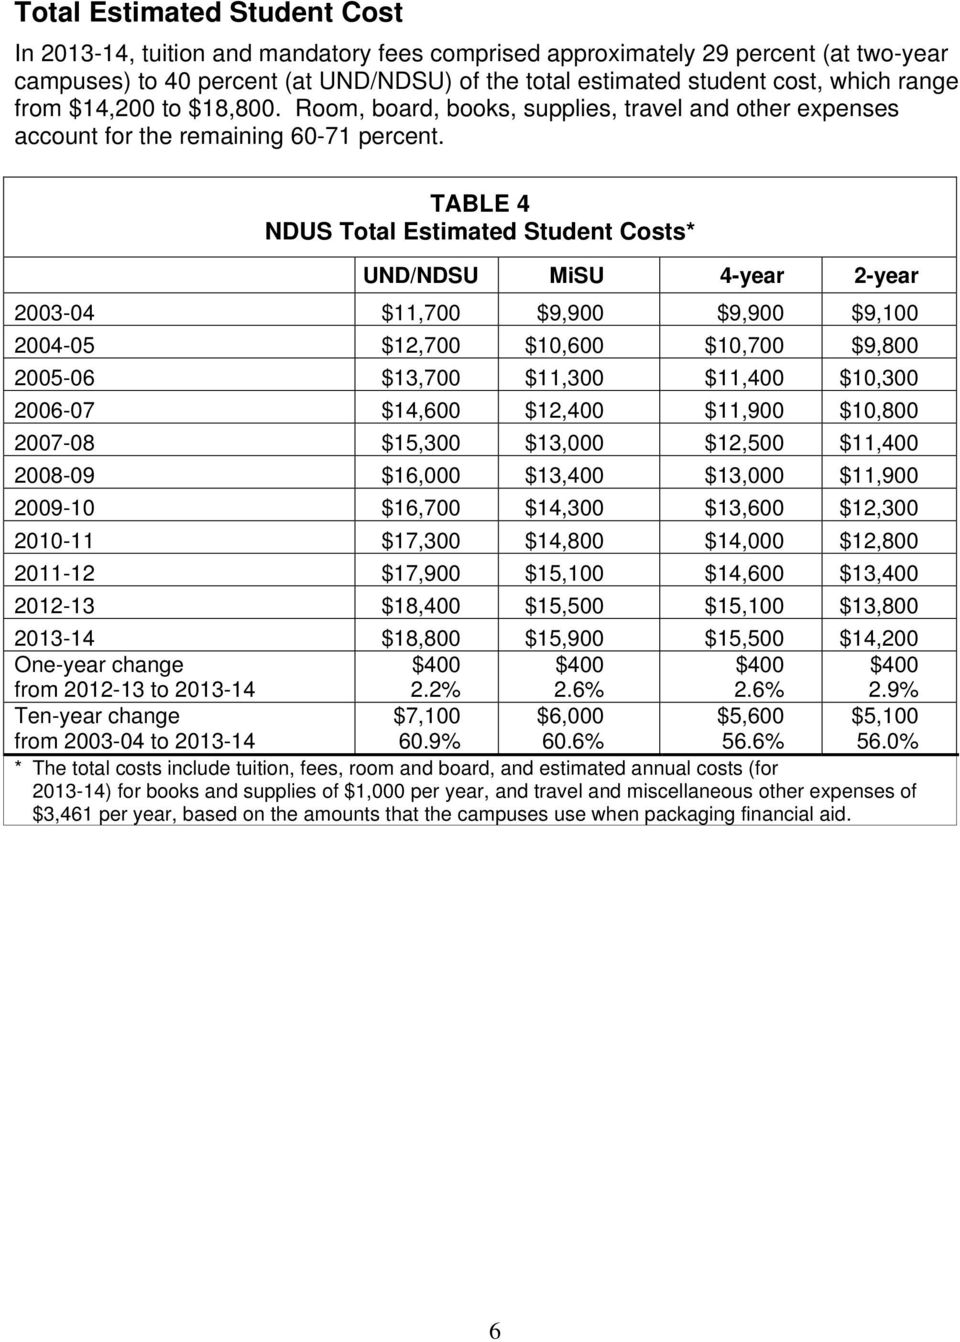 TABLE 4 NDUS Total Estimated Student Costs* UND/NDSU MiSU 4-year 2-year 2003-04 $11,700 $9,900 $9,900 $9,100 2004-05 $12,700 $10,600 $10,700 $9,800 2005-06 $13,700 $11,300 $11,400 $10,300 2006-07